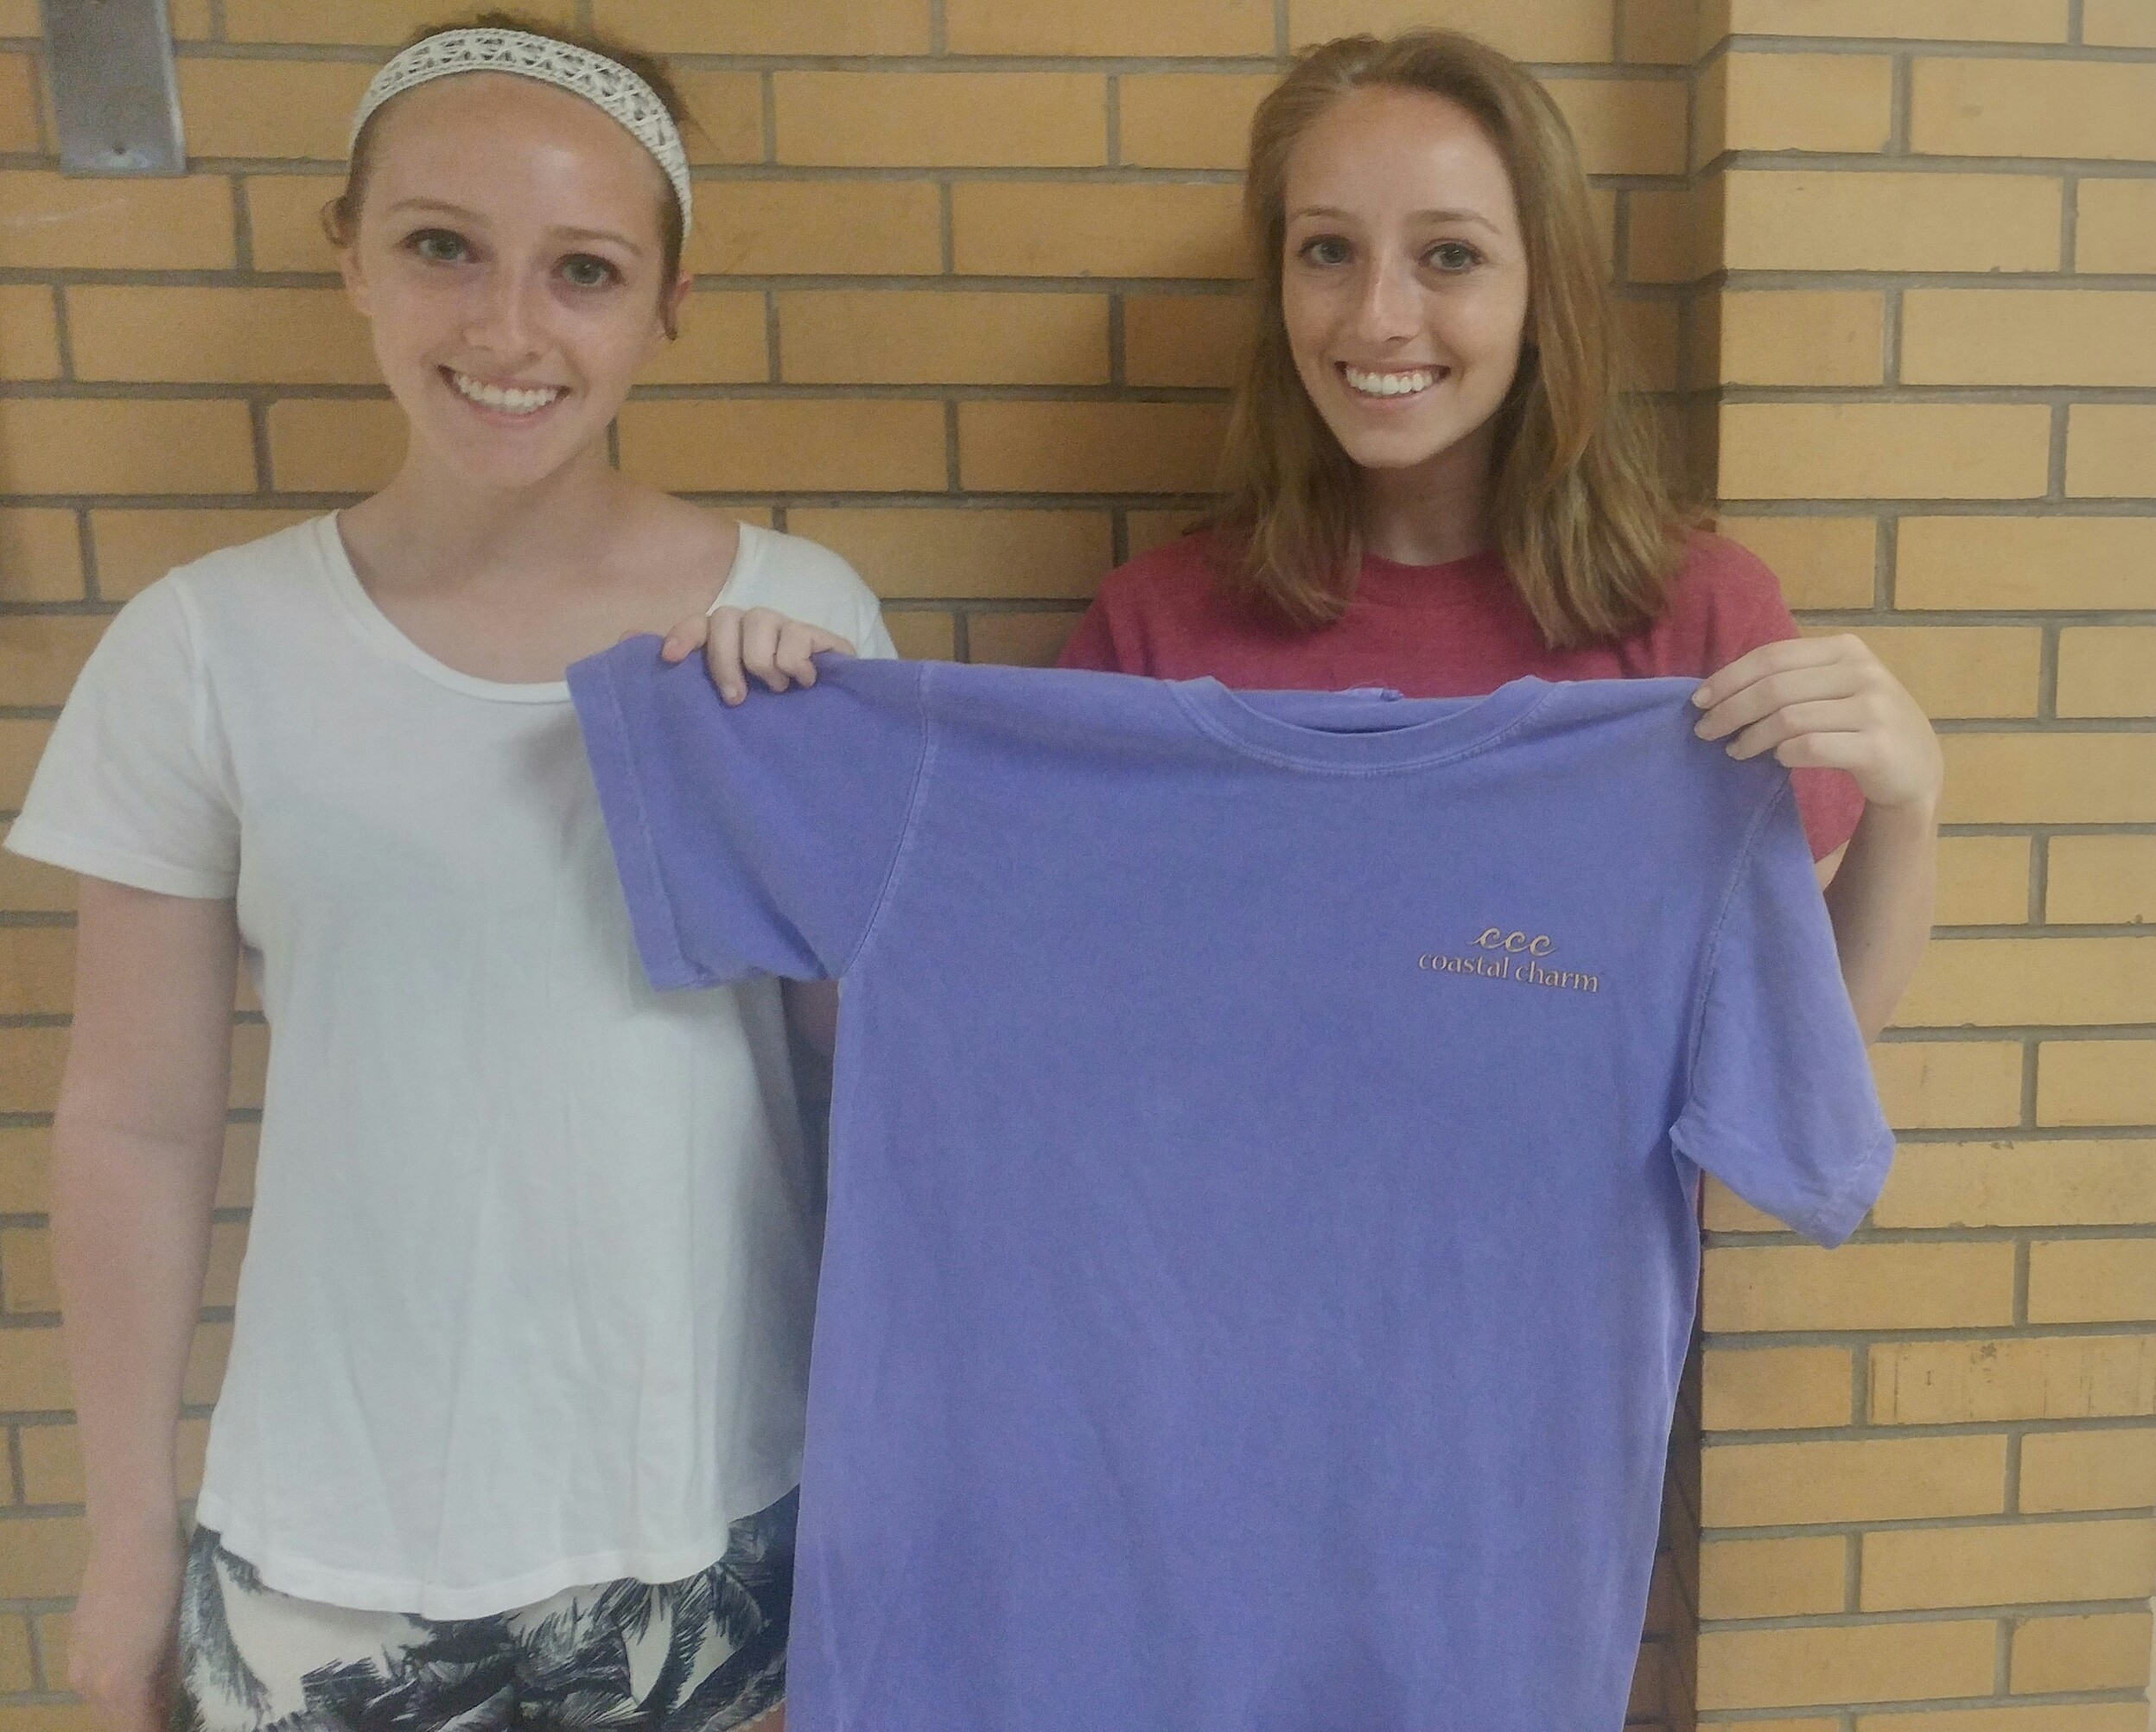 The sisters display their first t-shirt from the brand that features a sea-inspired logo.